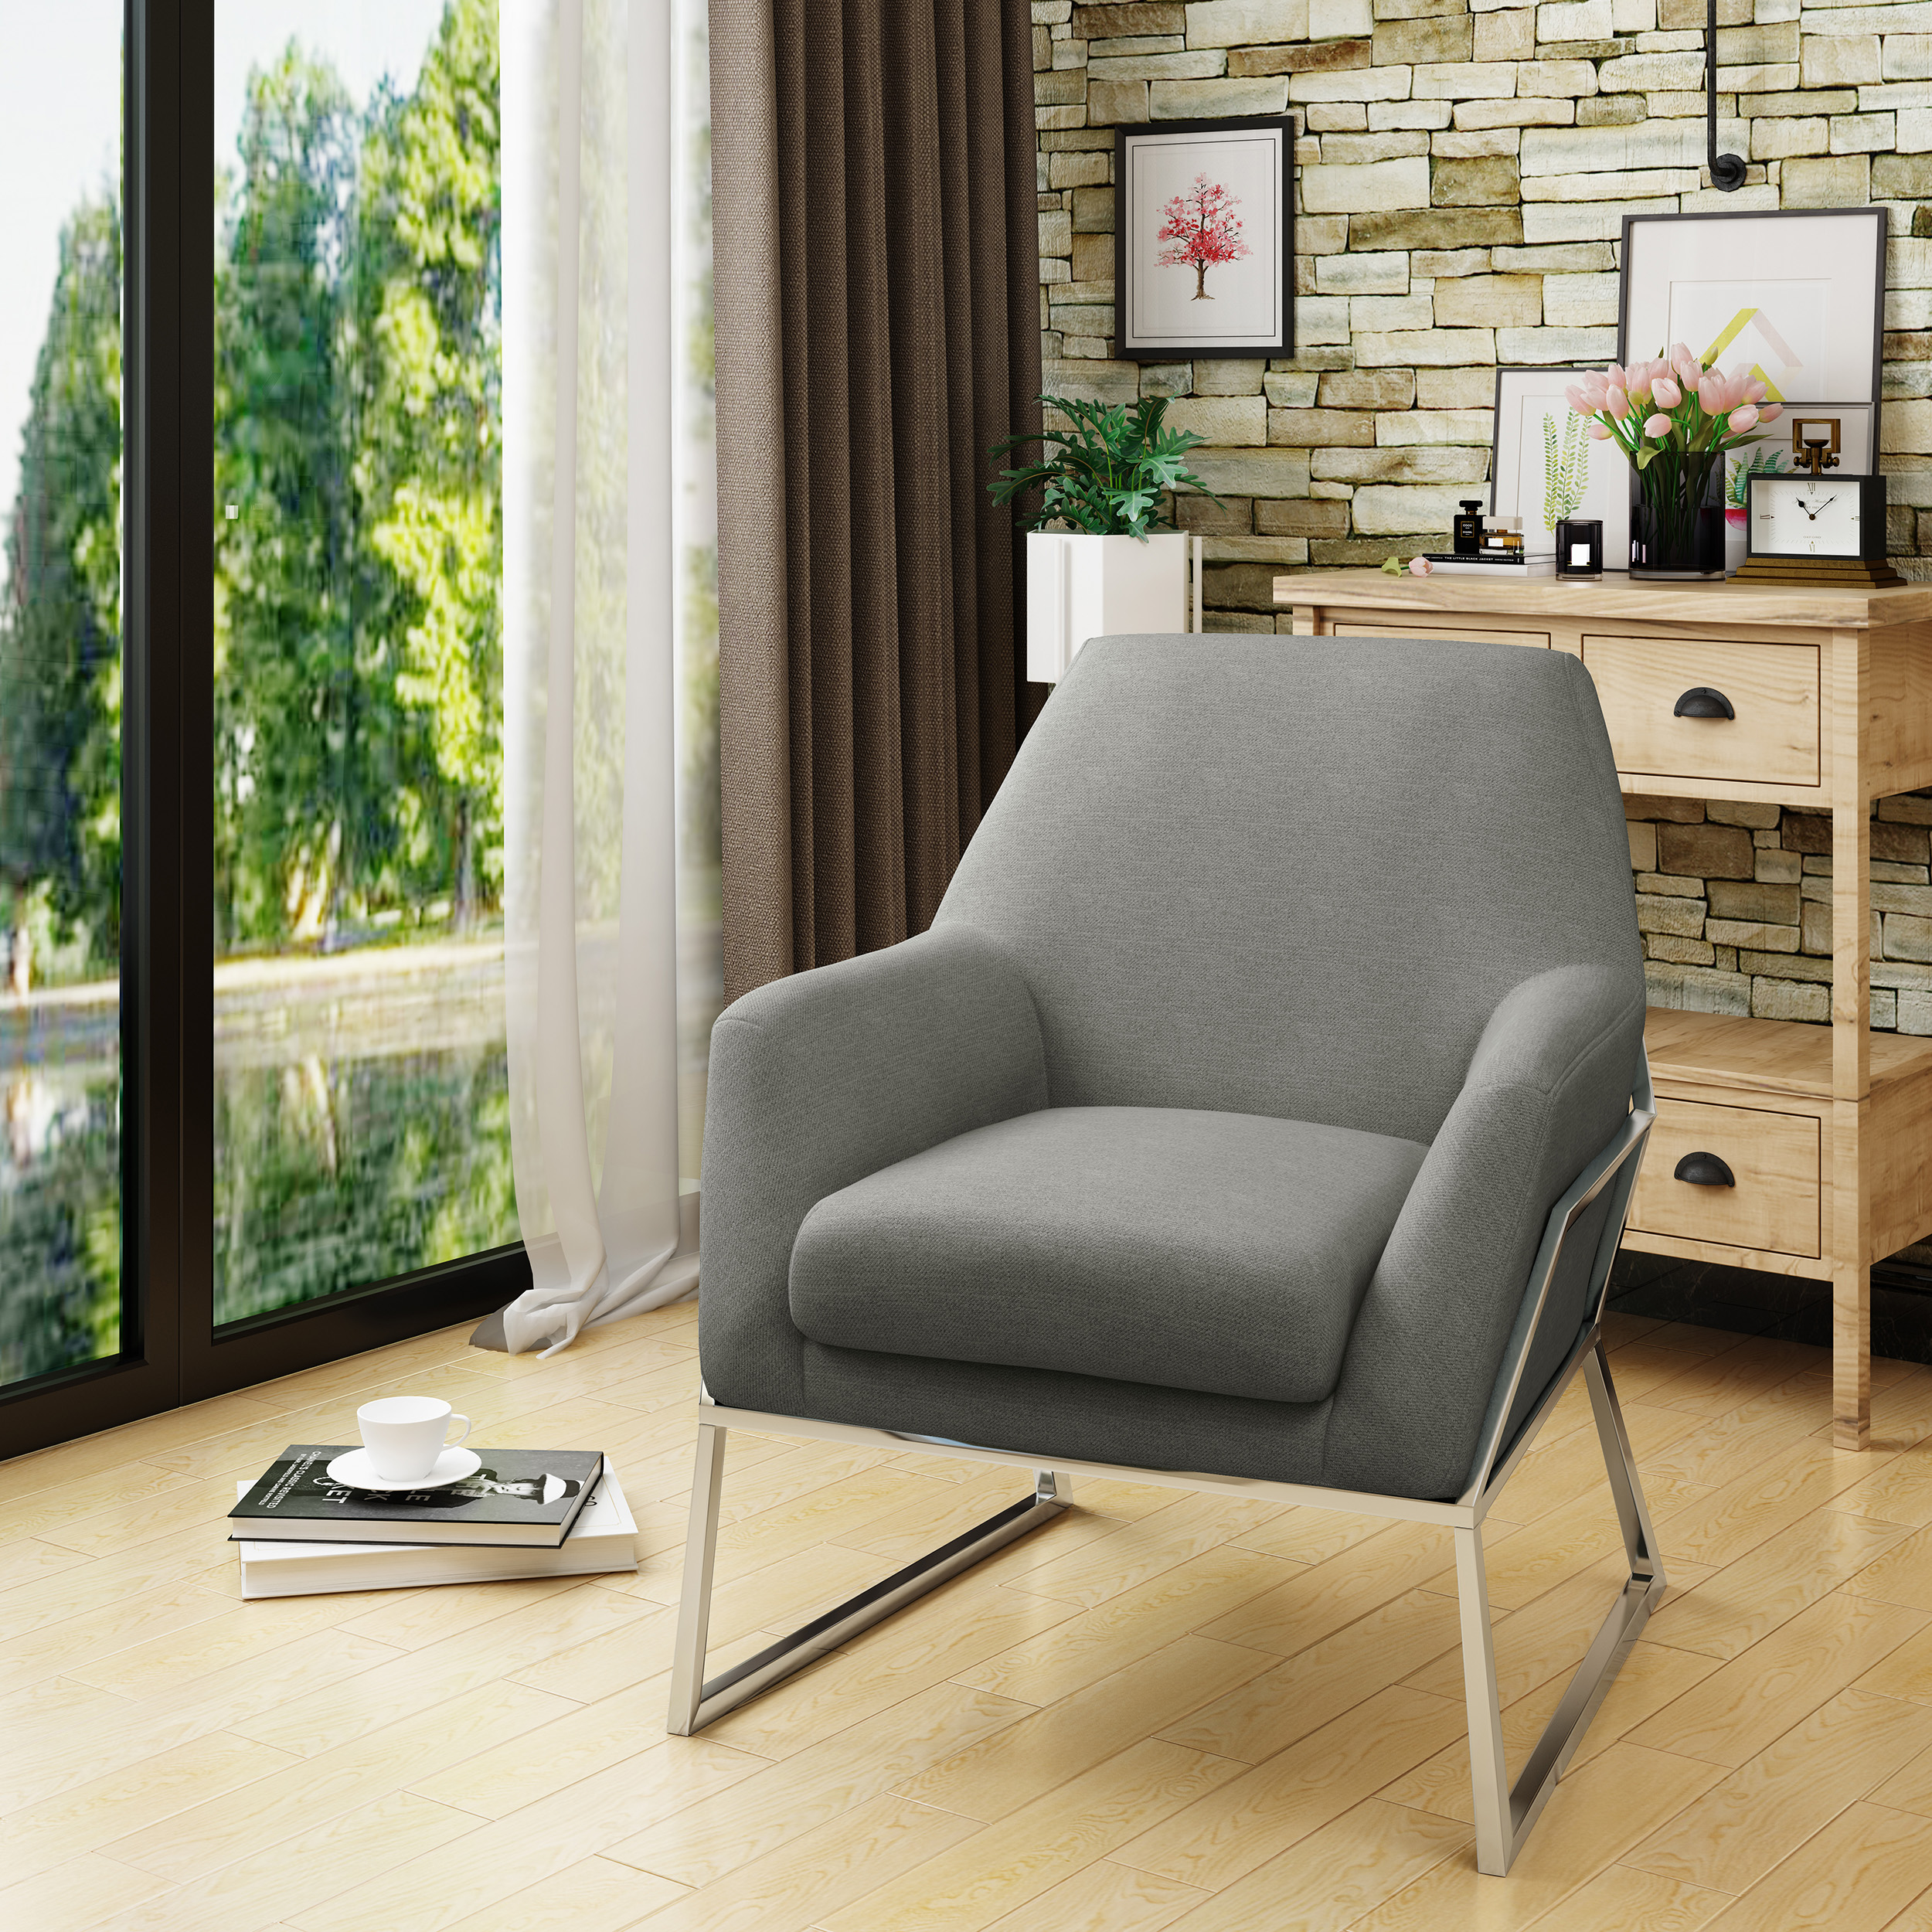 Noble House Zaim Modern Fabric Chair with Stainless Steel Frame,Grey